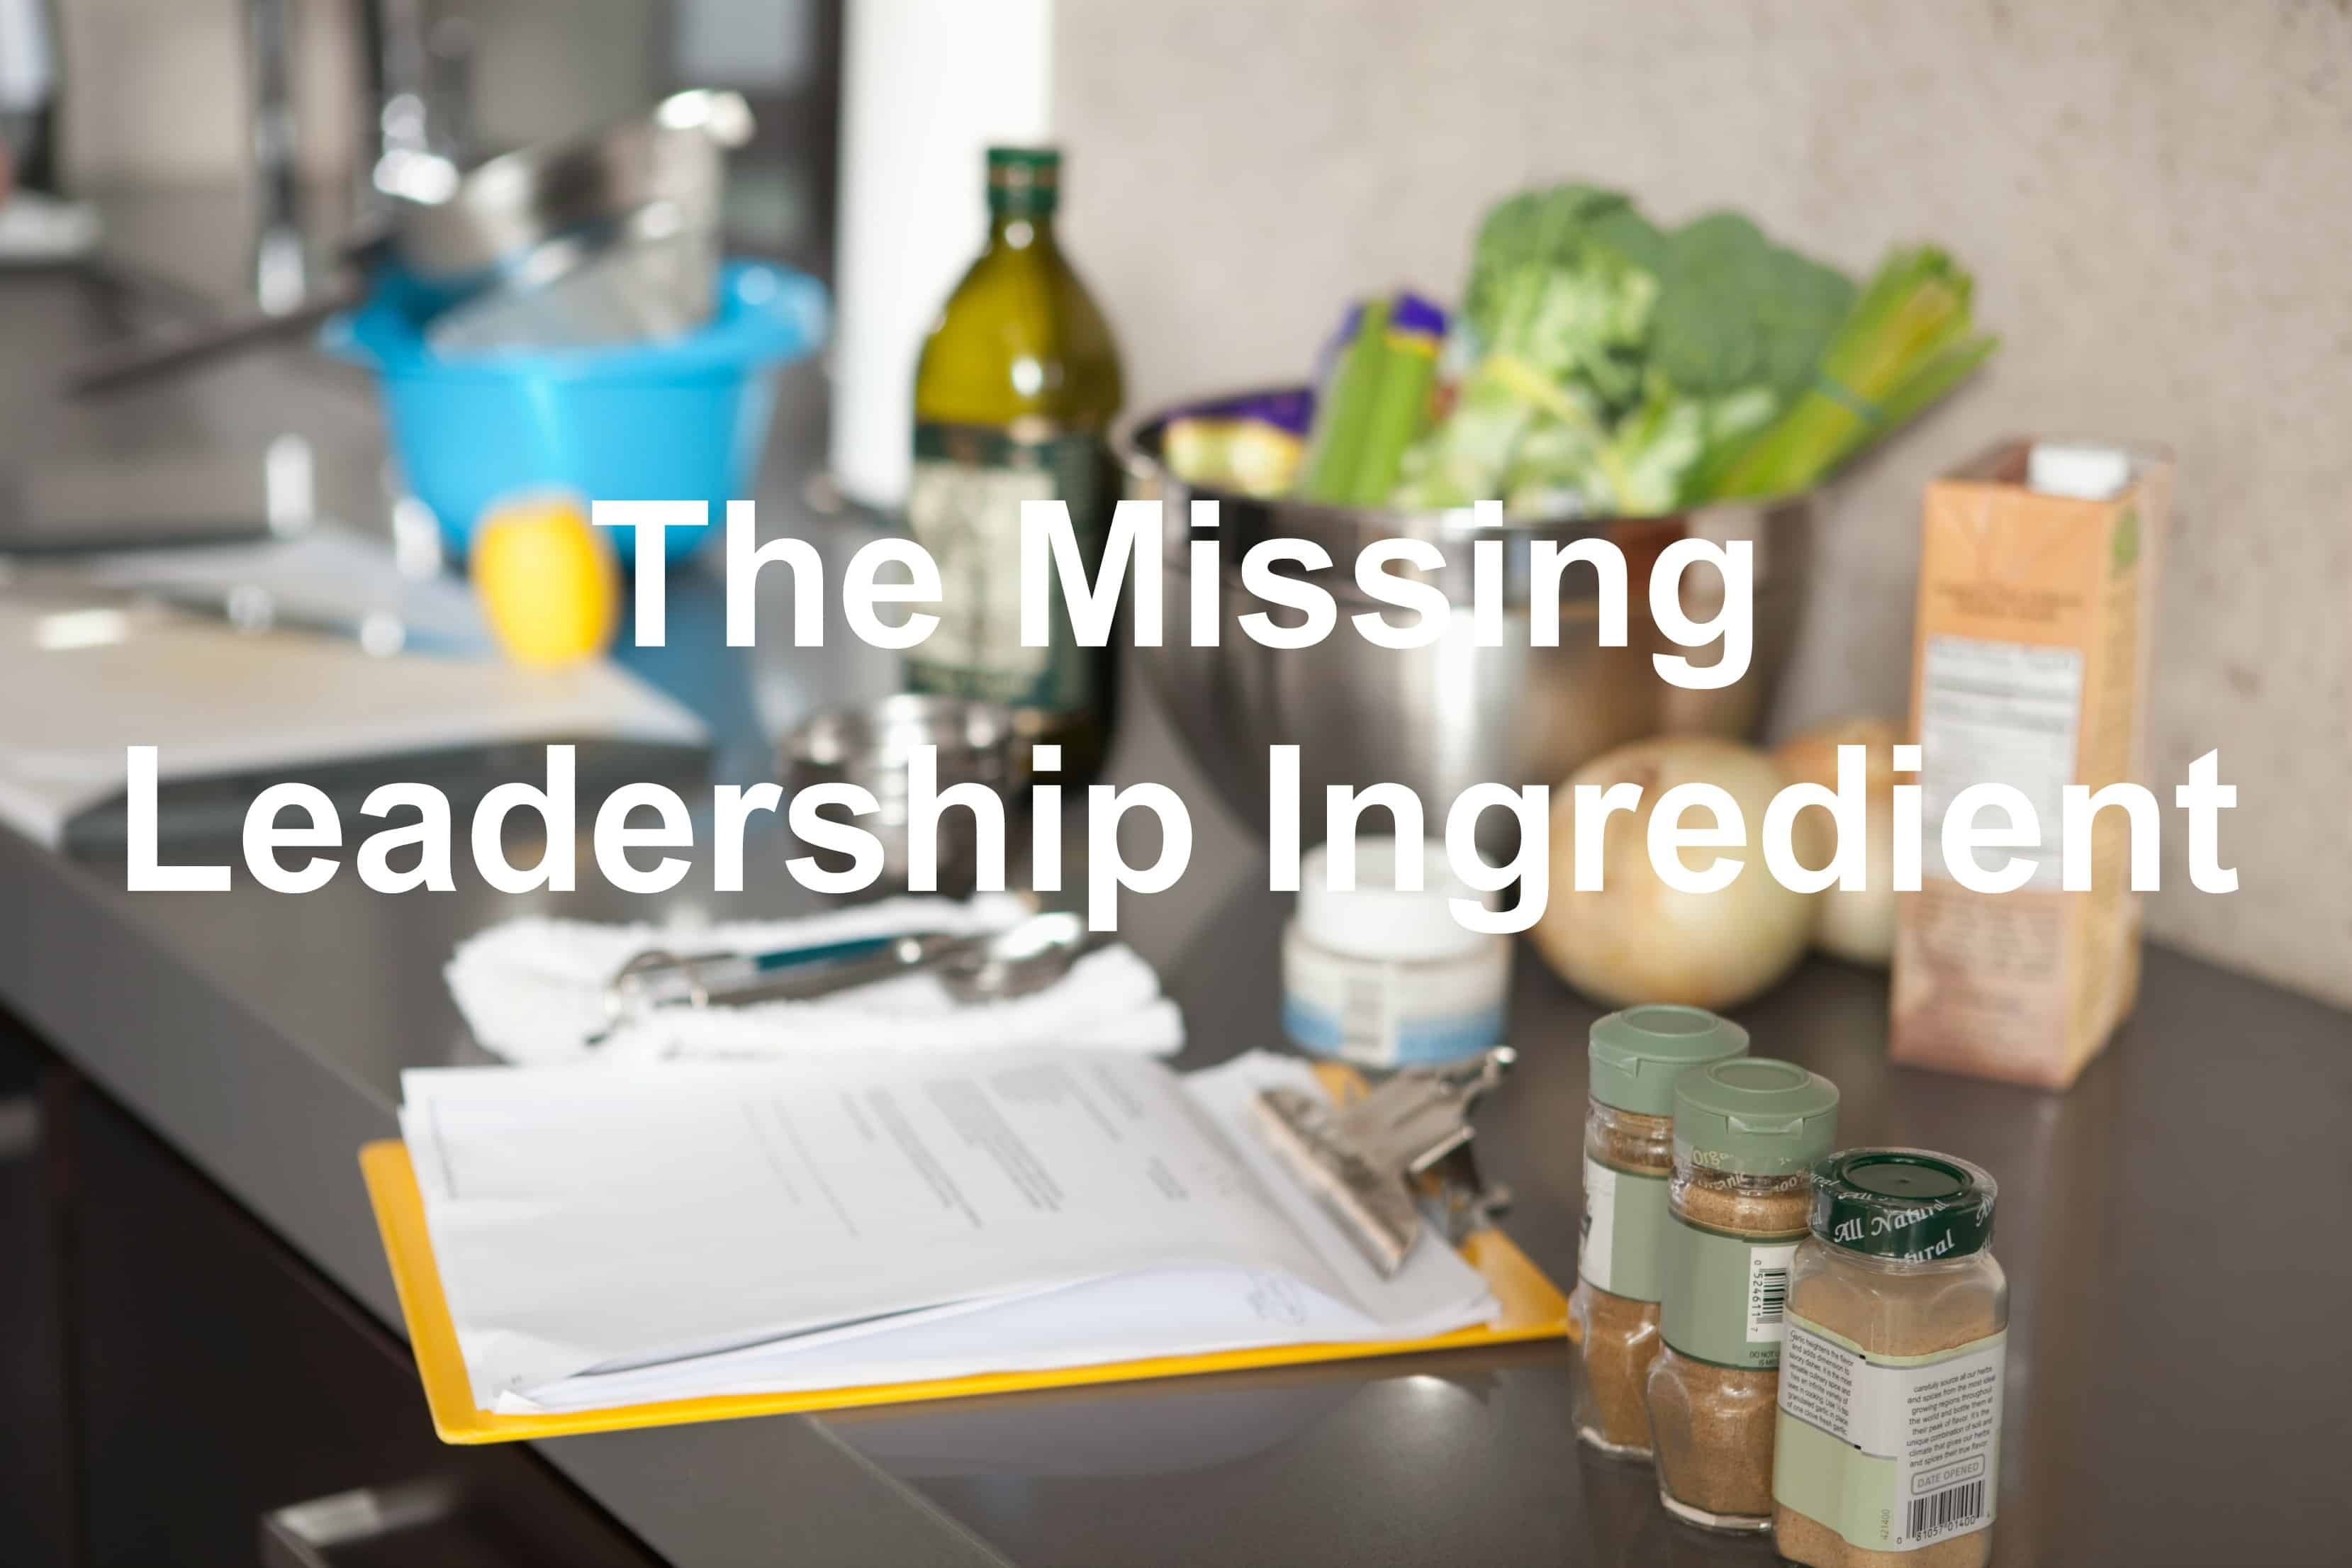 What leadership ingredient are you missing?